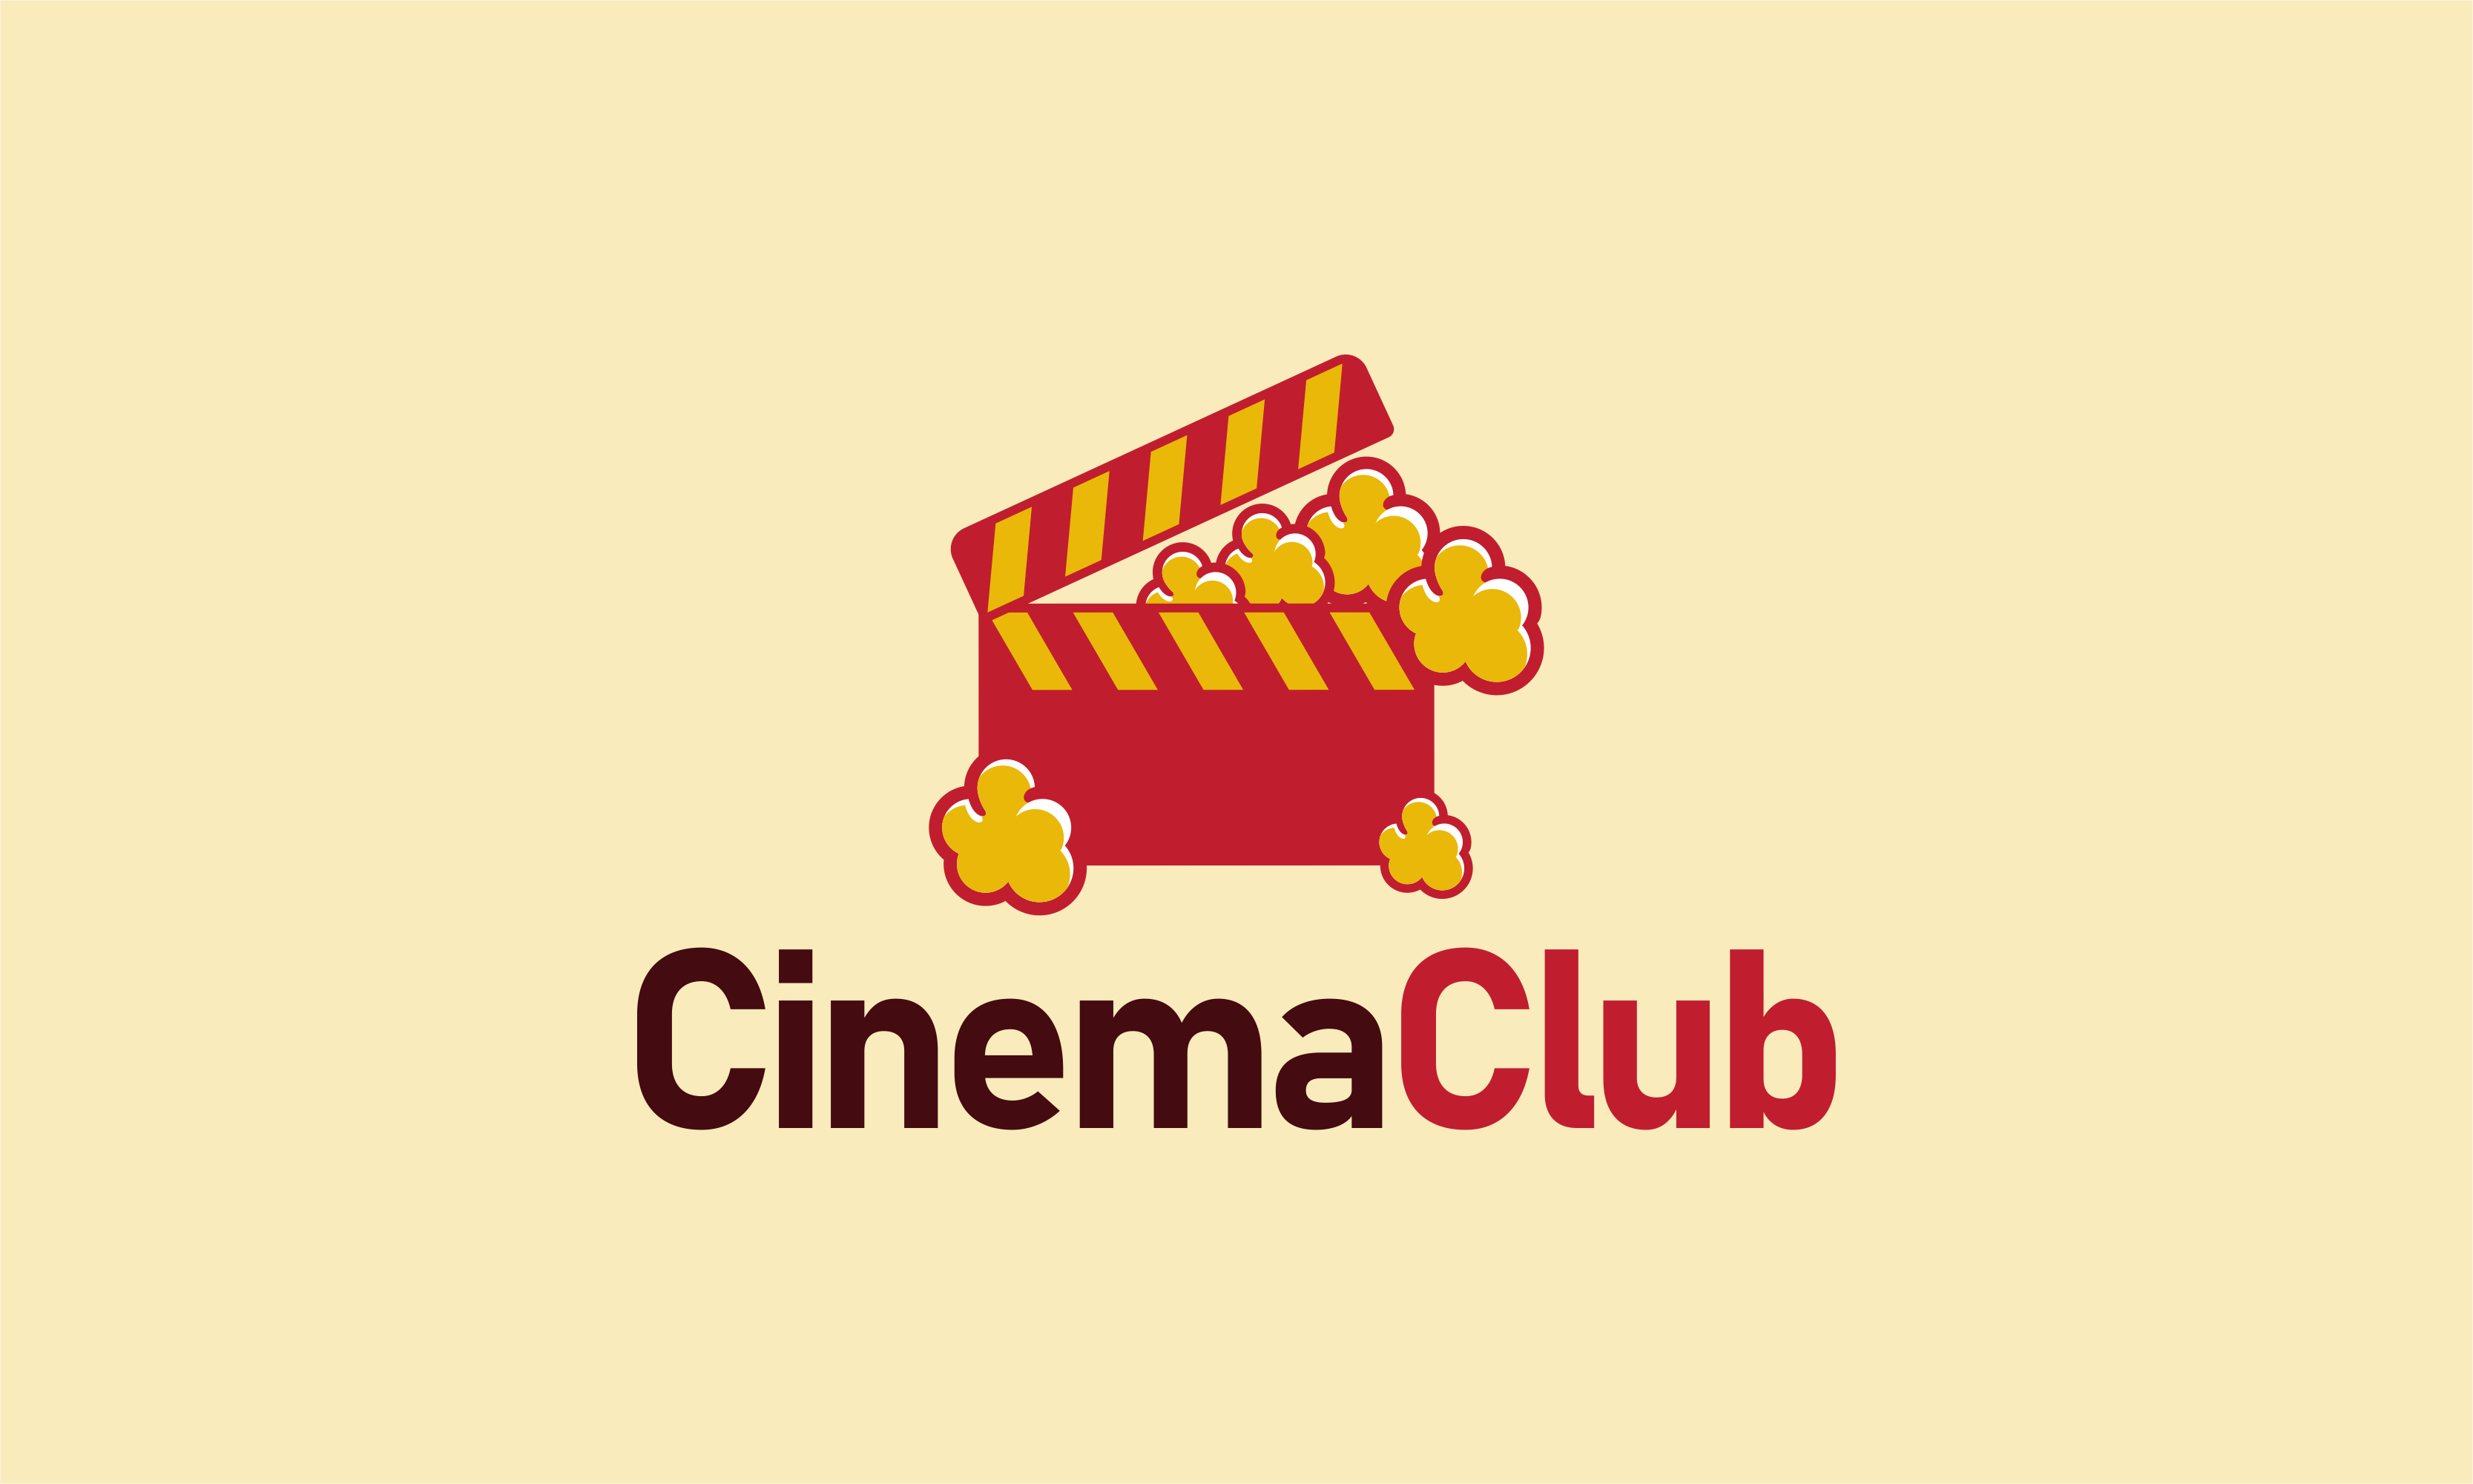 Cinemaclub